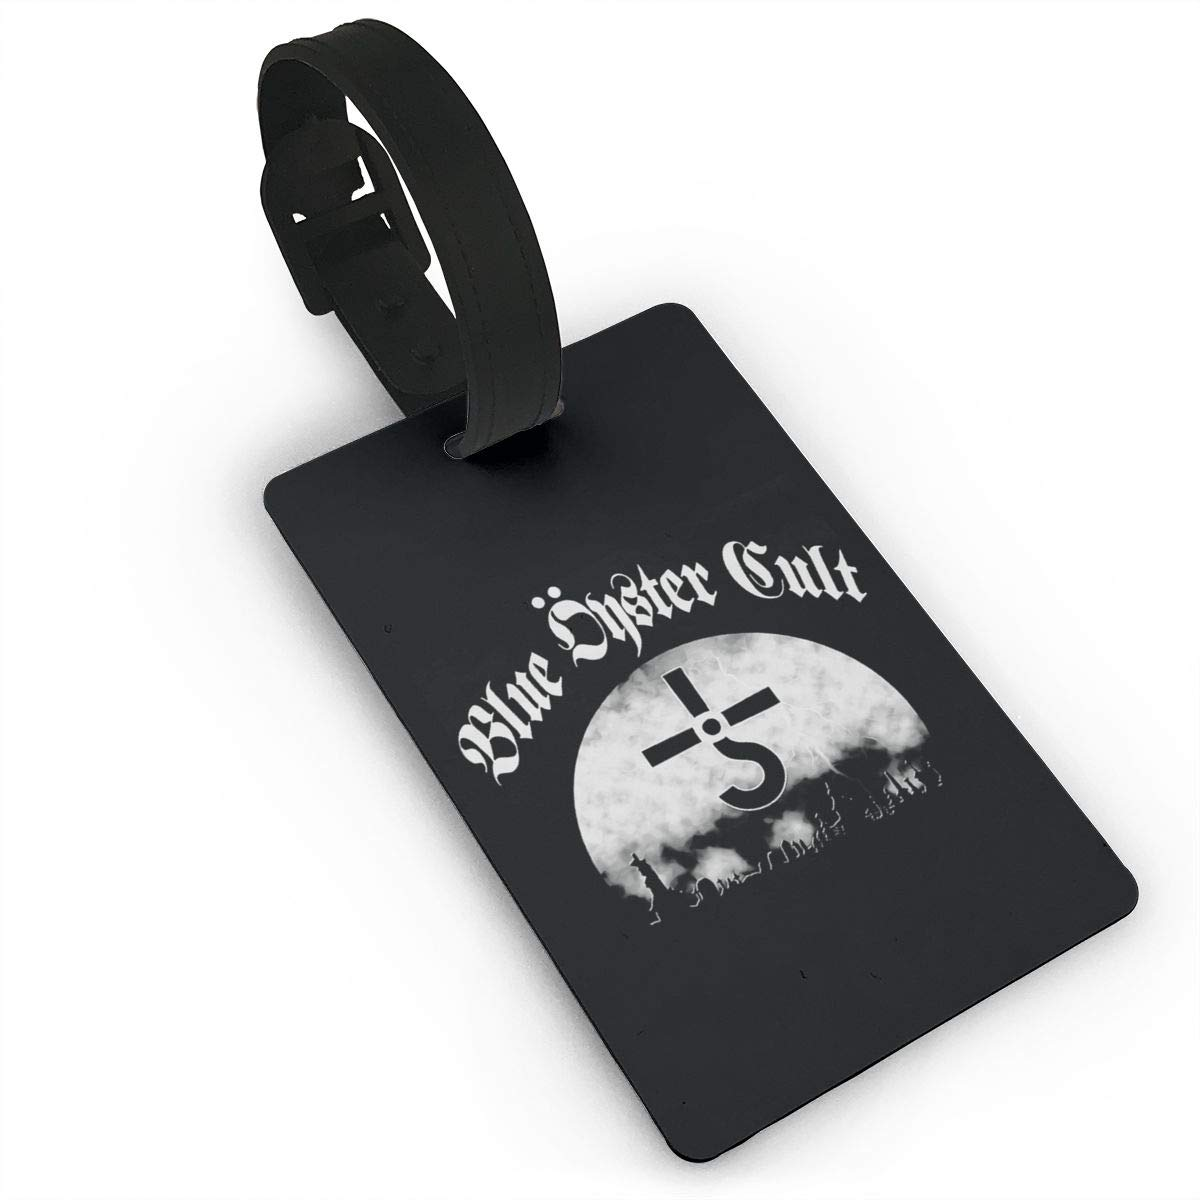 TDHGRJS Blue Oyster Cult PVC Luggage Tags Travel Baggage Labels with Adjustable Strap